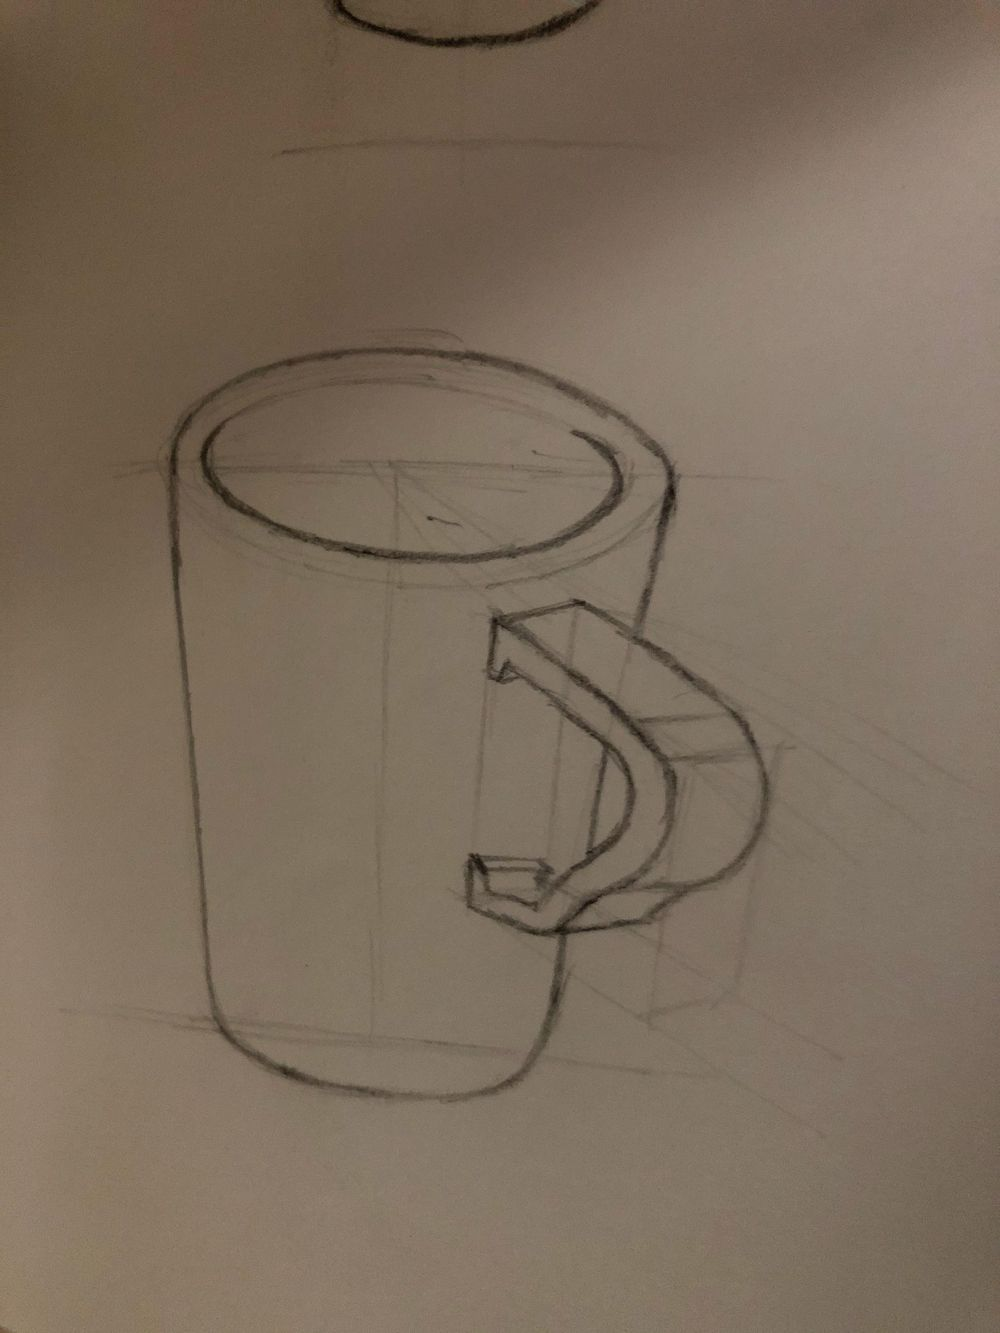 Perpective sketches - image 2 - student project